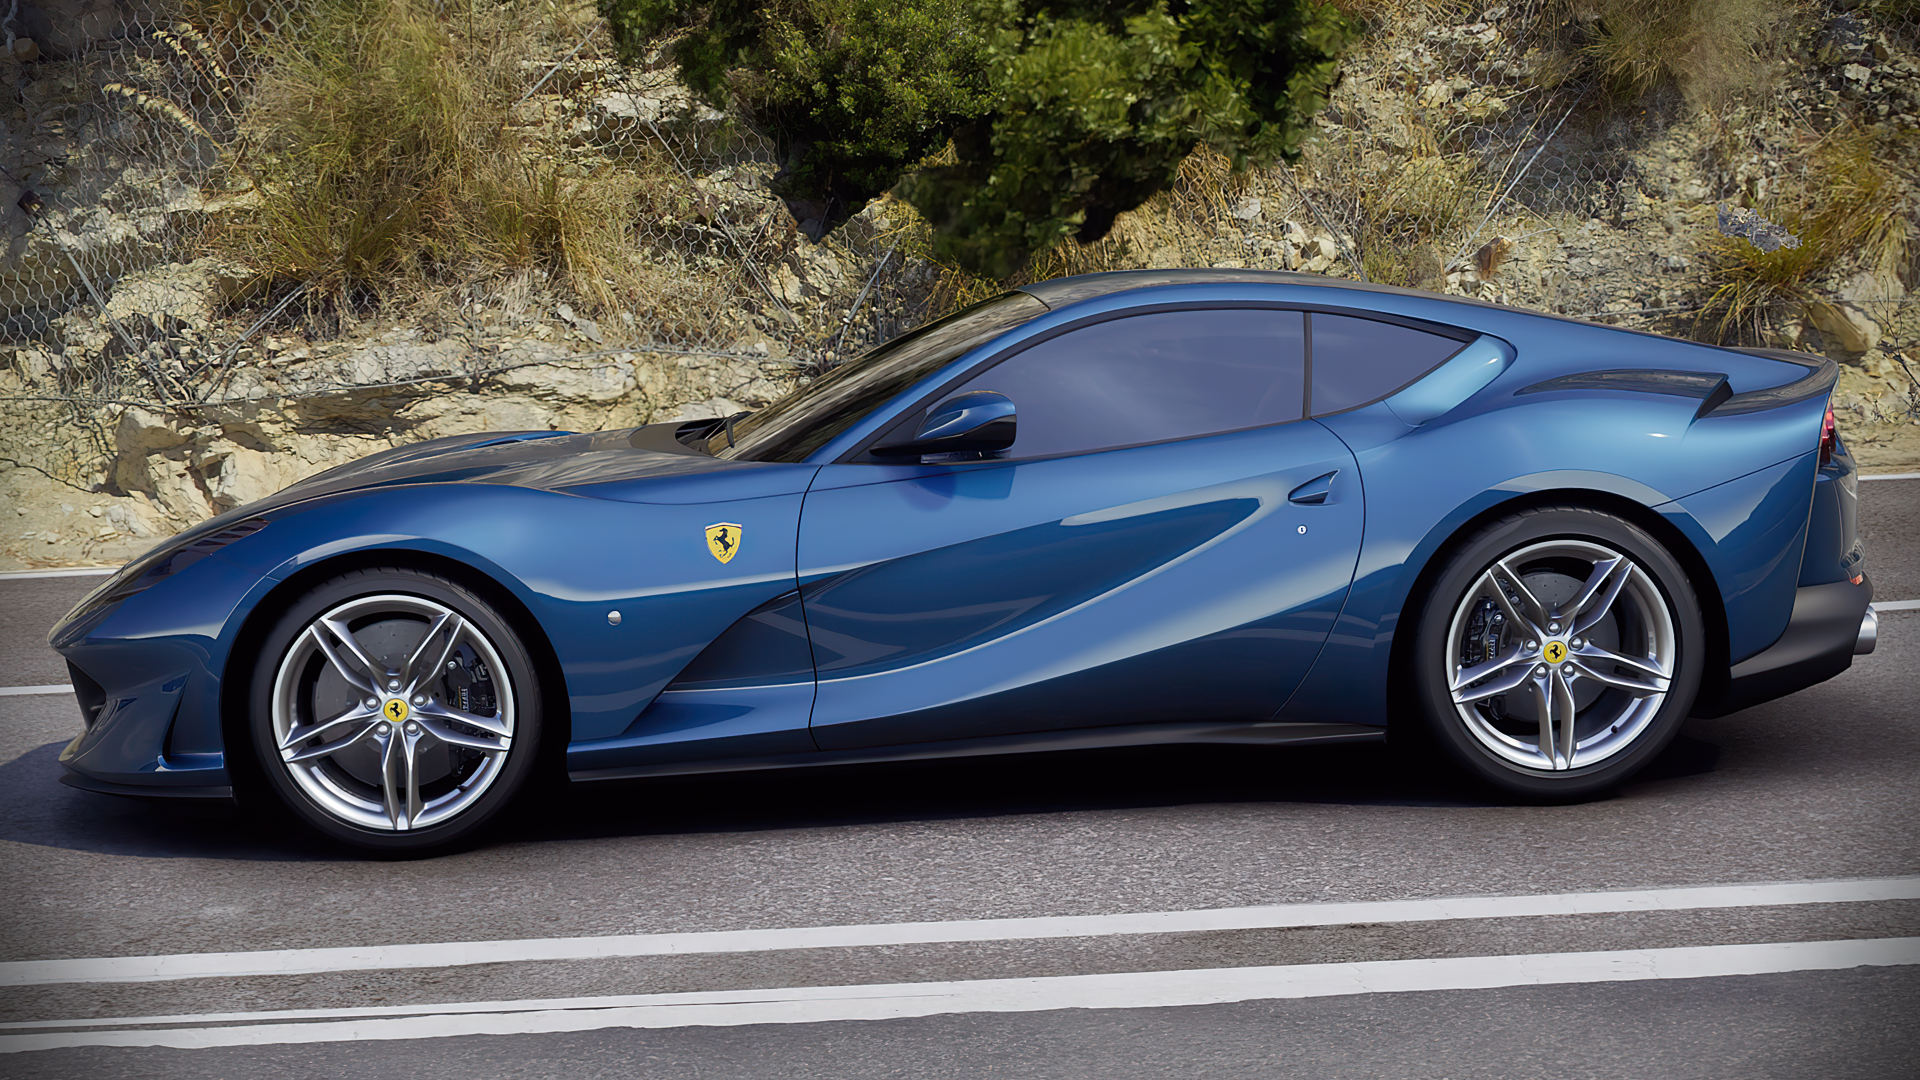 Ferrari 812 Superfast Wallpaper Blue